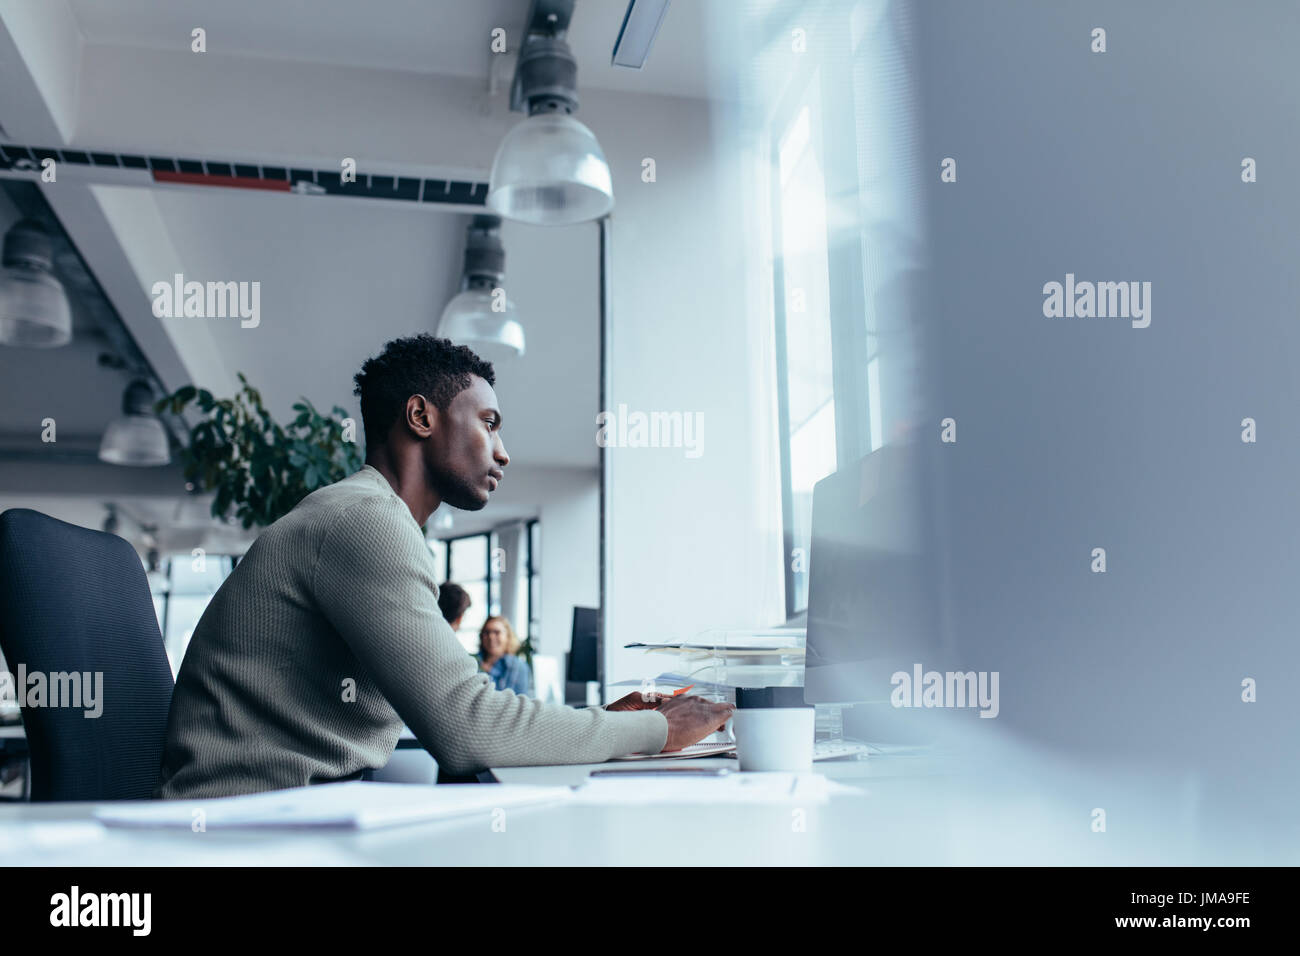 Side view of young african man working in office. Male executive sitting at his desk and working on desktop computer. - Stock Photo